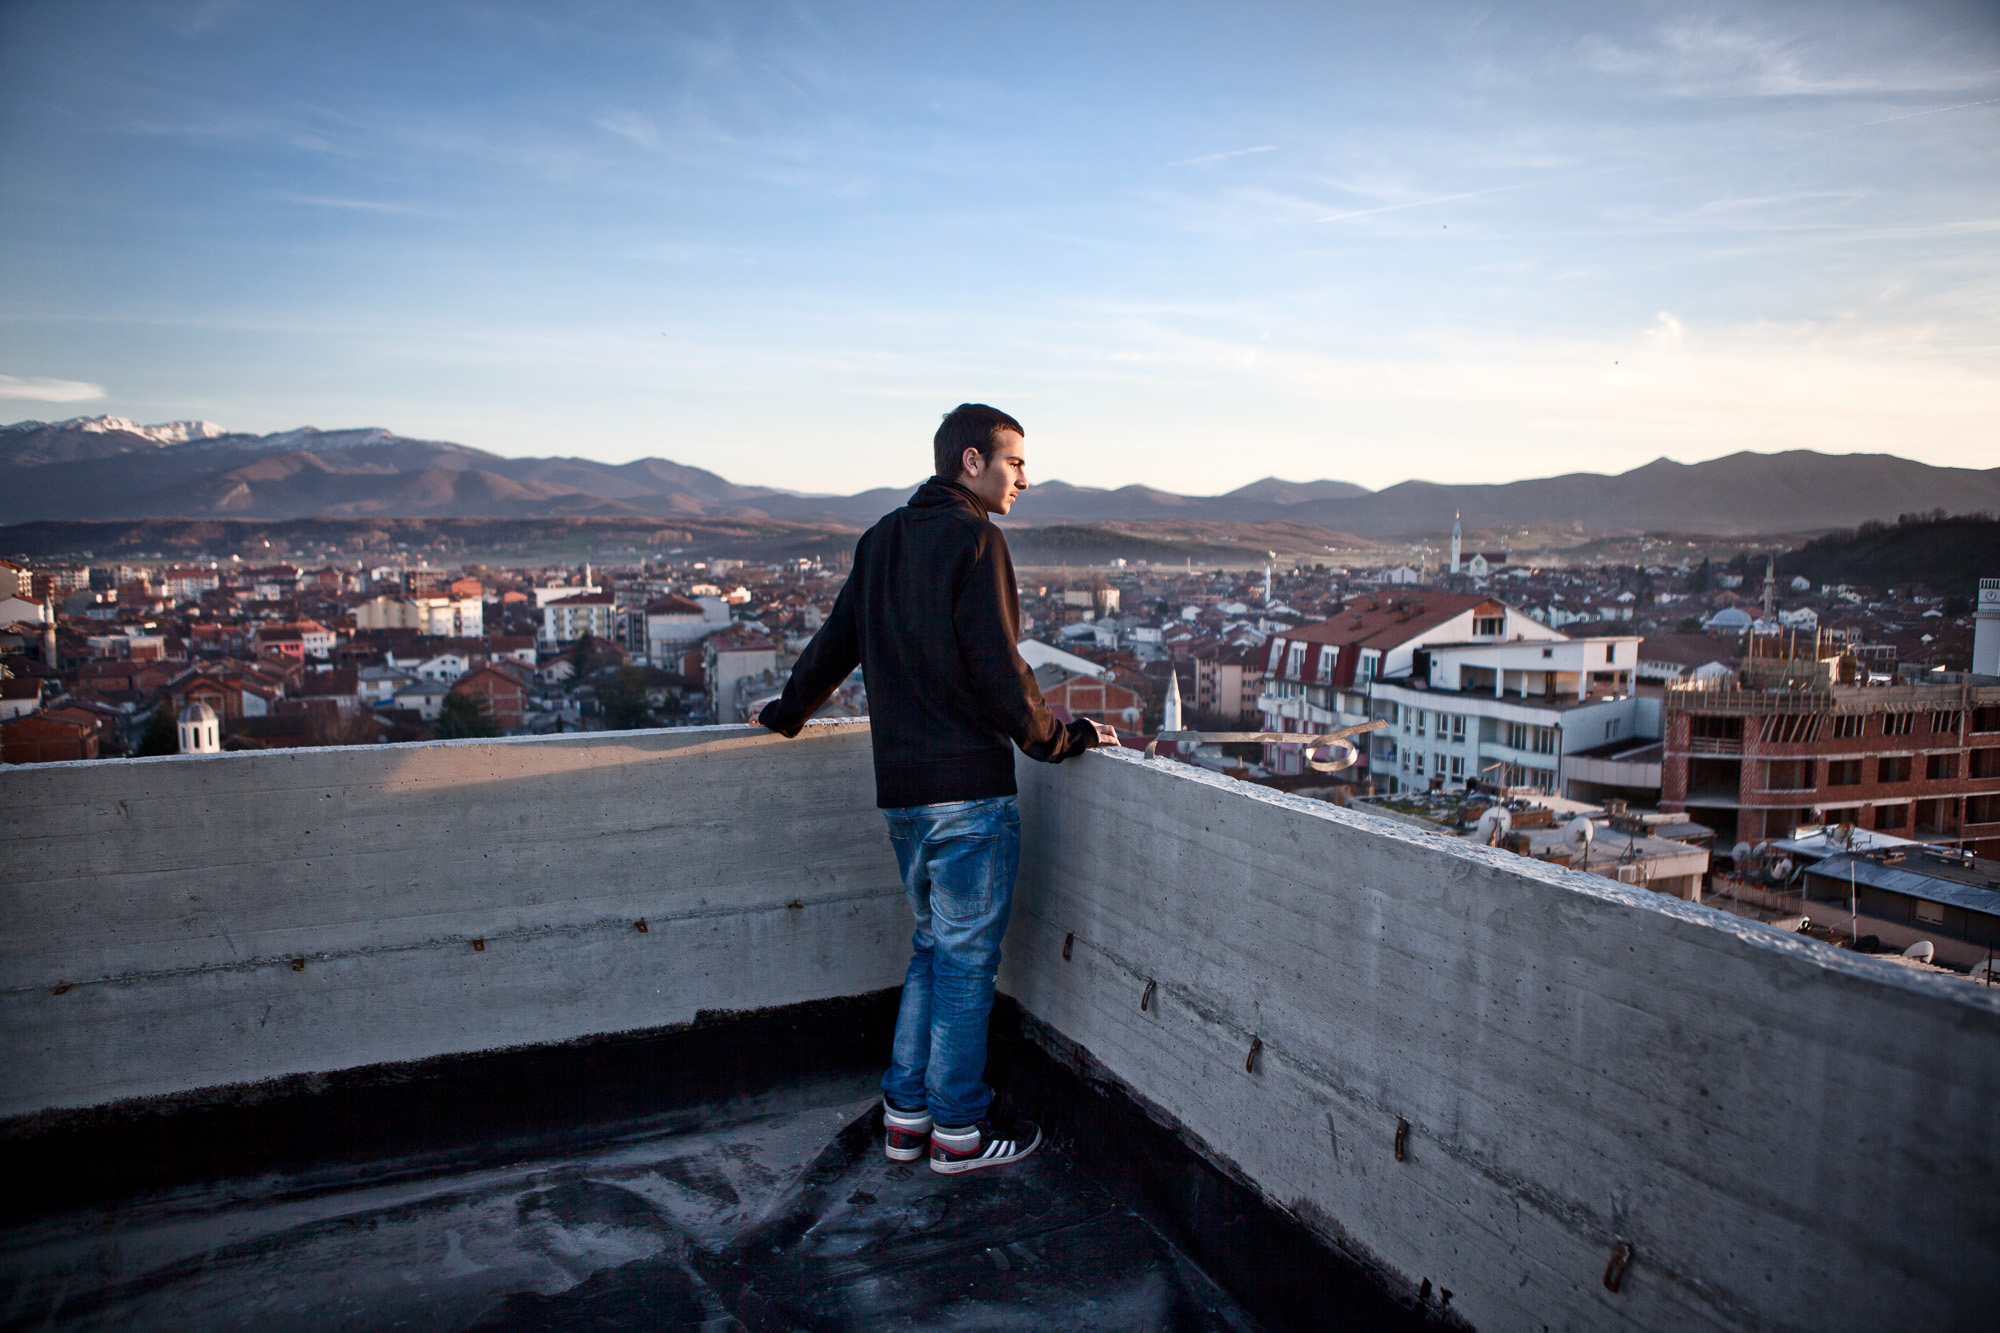 Pëllumb Rraci, 16 years old, high school student, looks out over the city of Gjakova from the top of an unfinished building.   Even with the prospect of probable unemployment, he remains highly motivated and optimistic in following his father's footsteps of becoming an accountant. Kosovo has a highly educated young population with enormous potential.